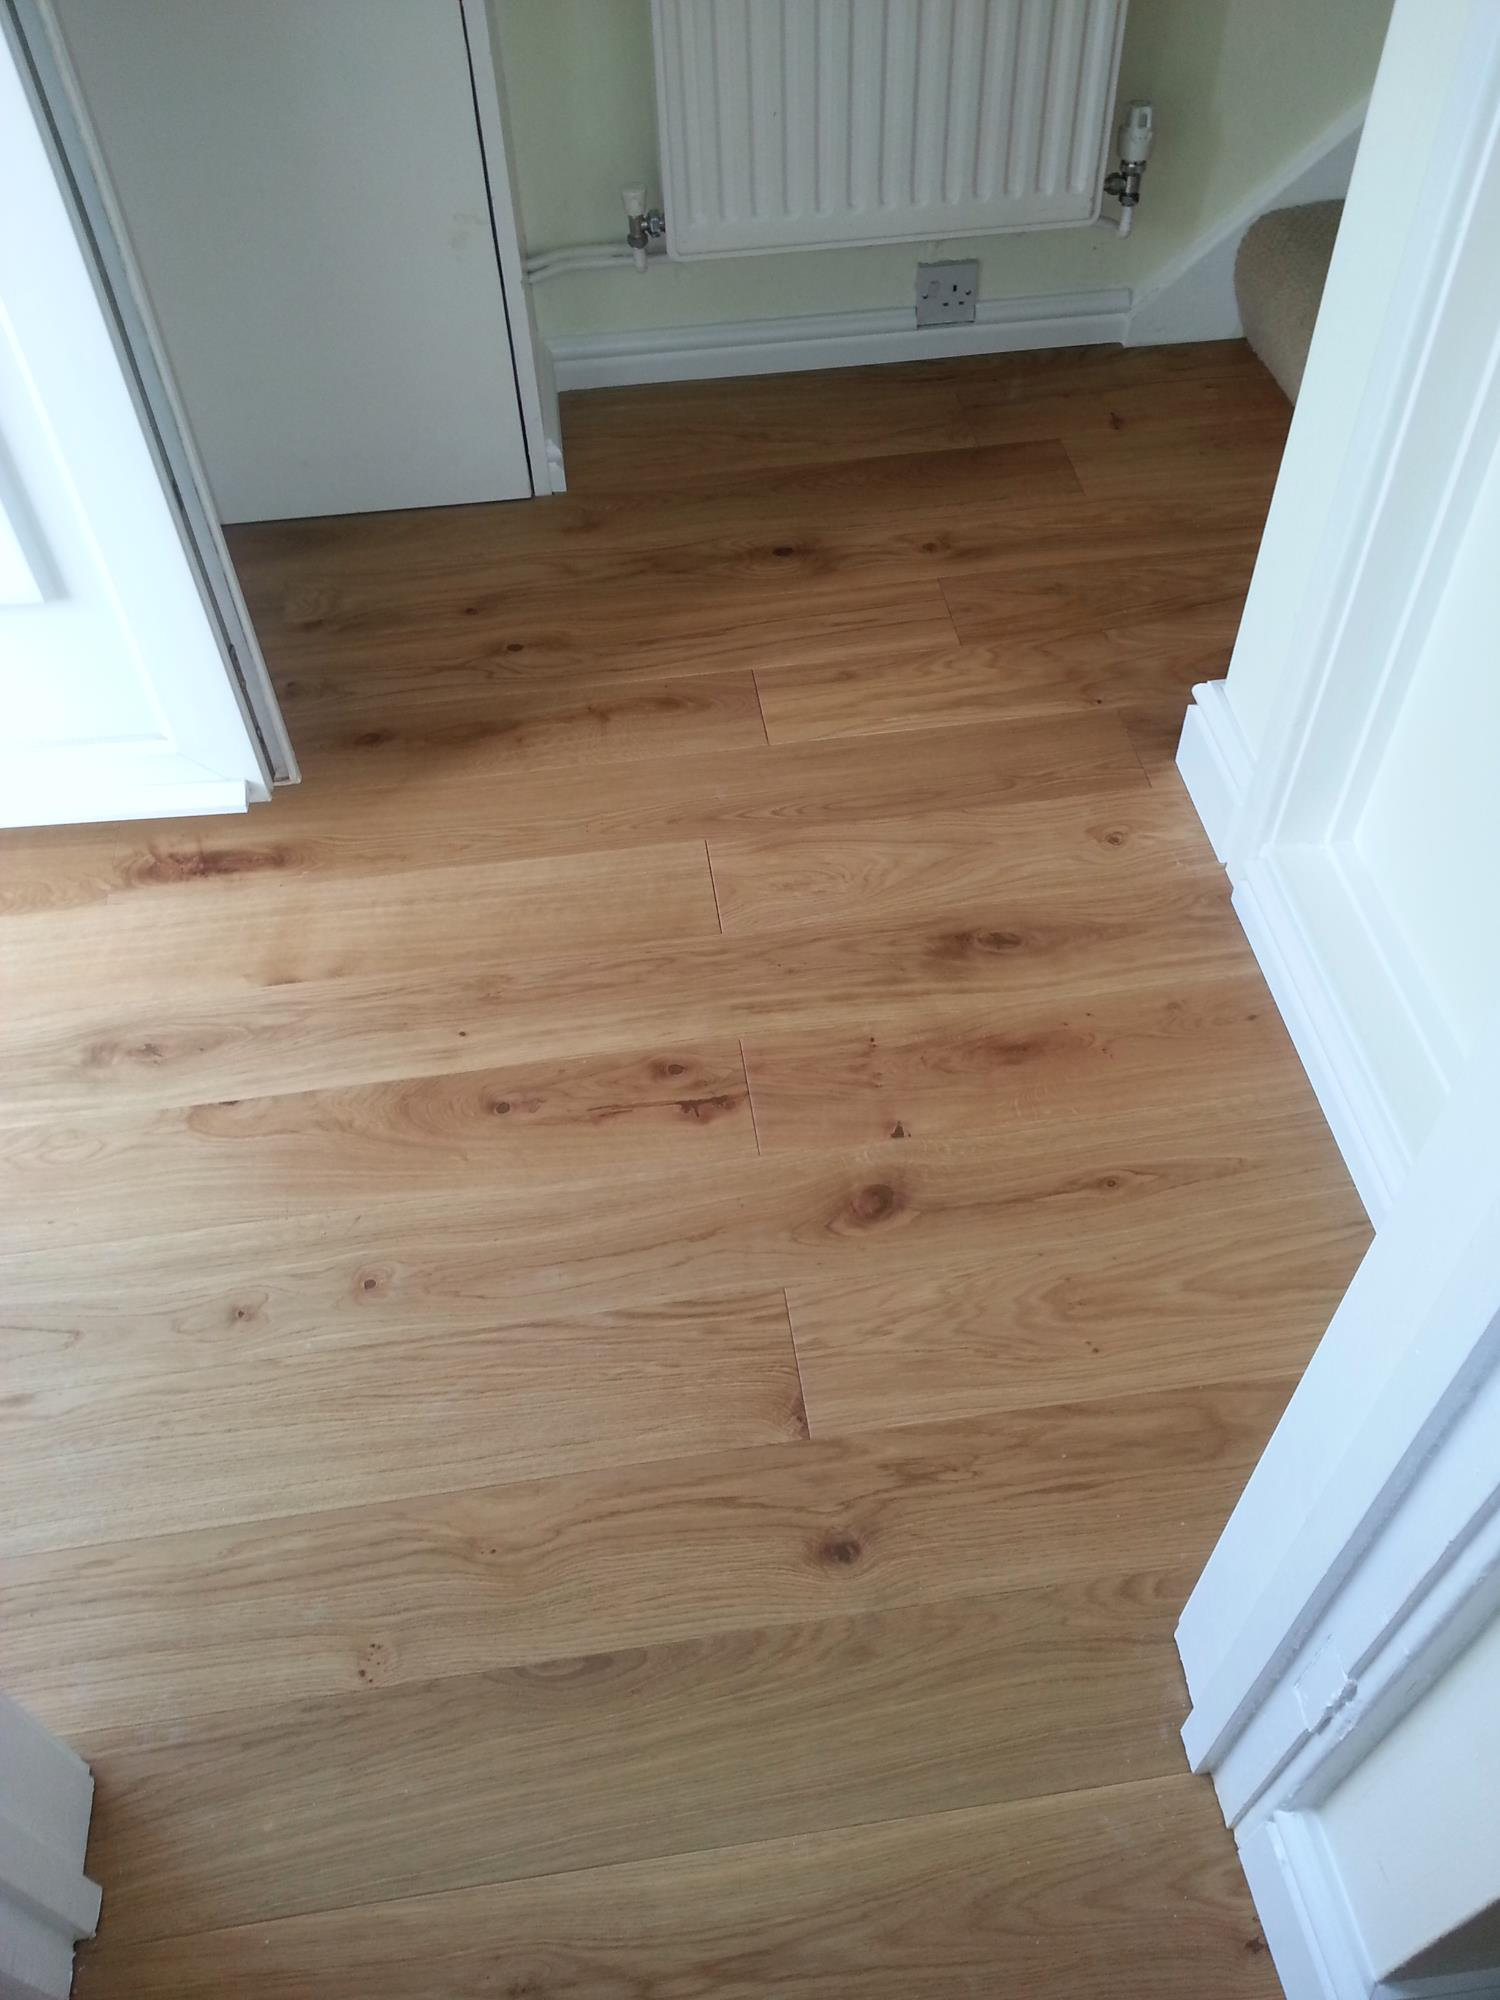 How To Lay Laminate Flooring Against Skirting Boards